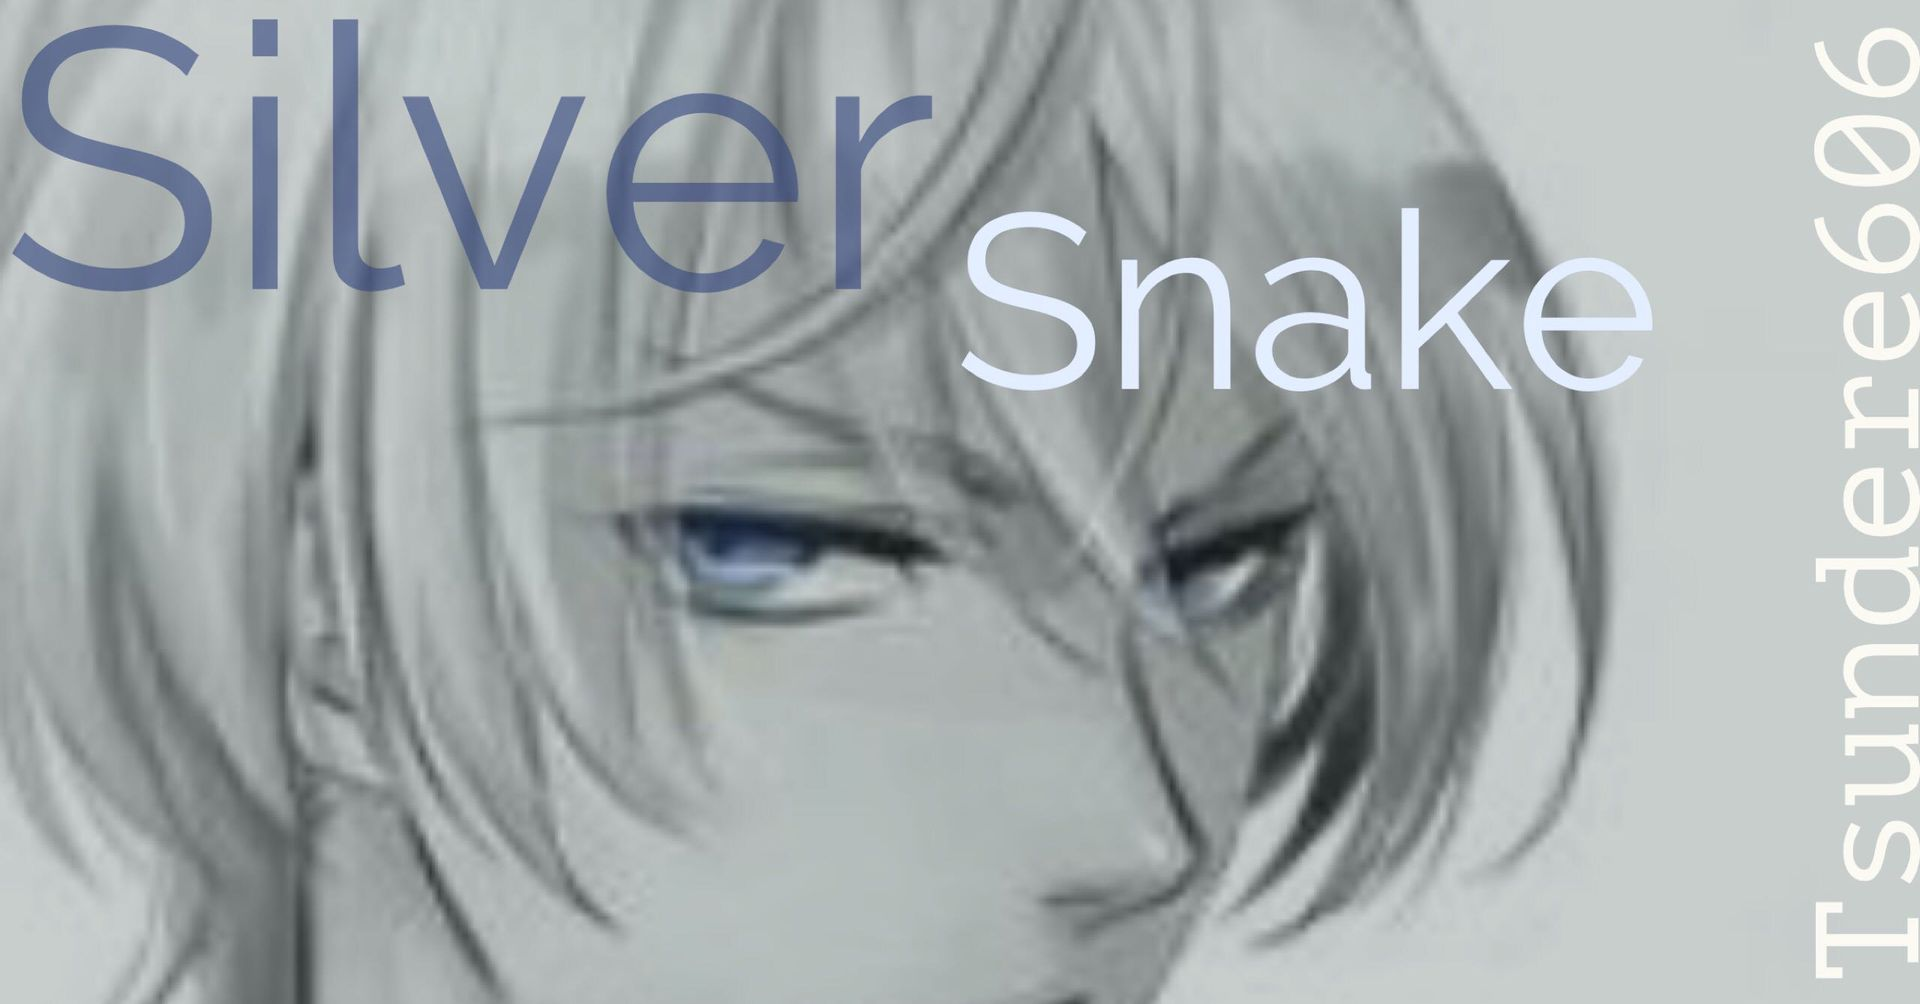 Silver Snake (Yandere Prince x Reader) - 5 Captured - Page 3 - Wattpad